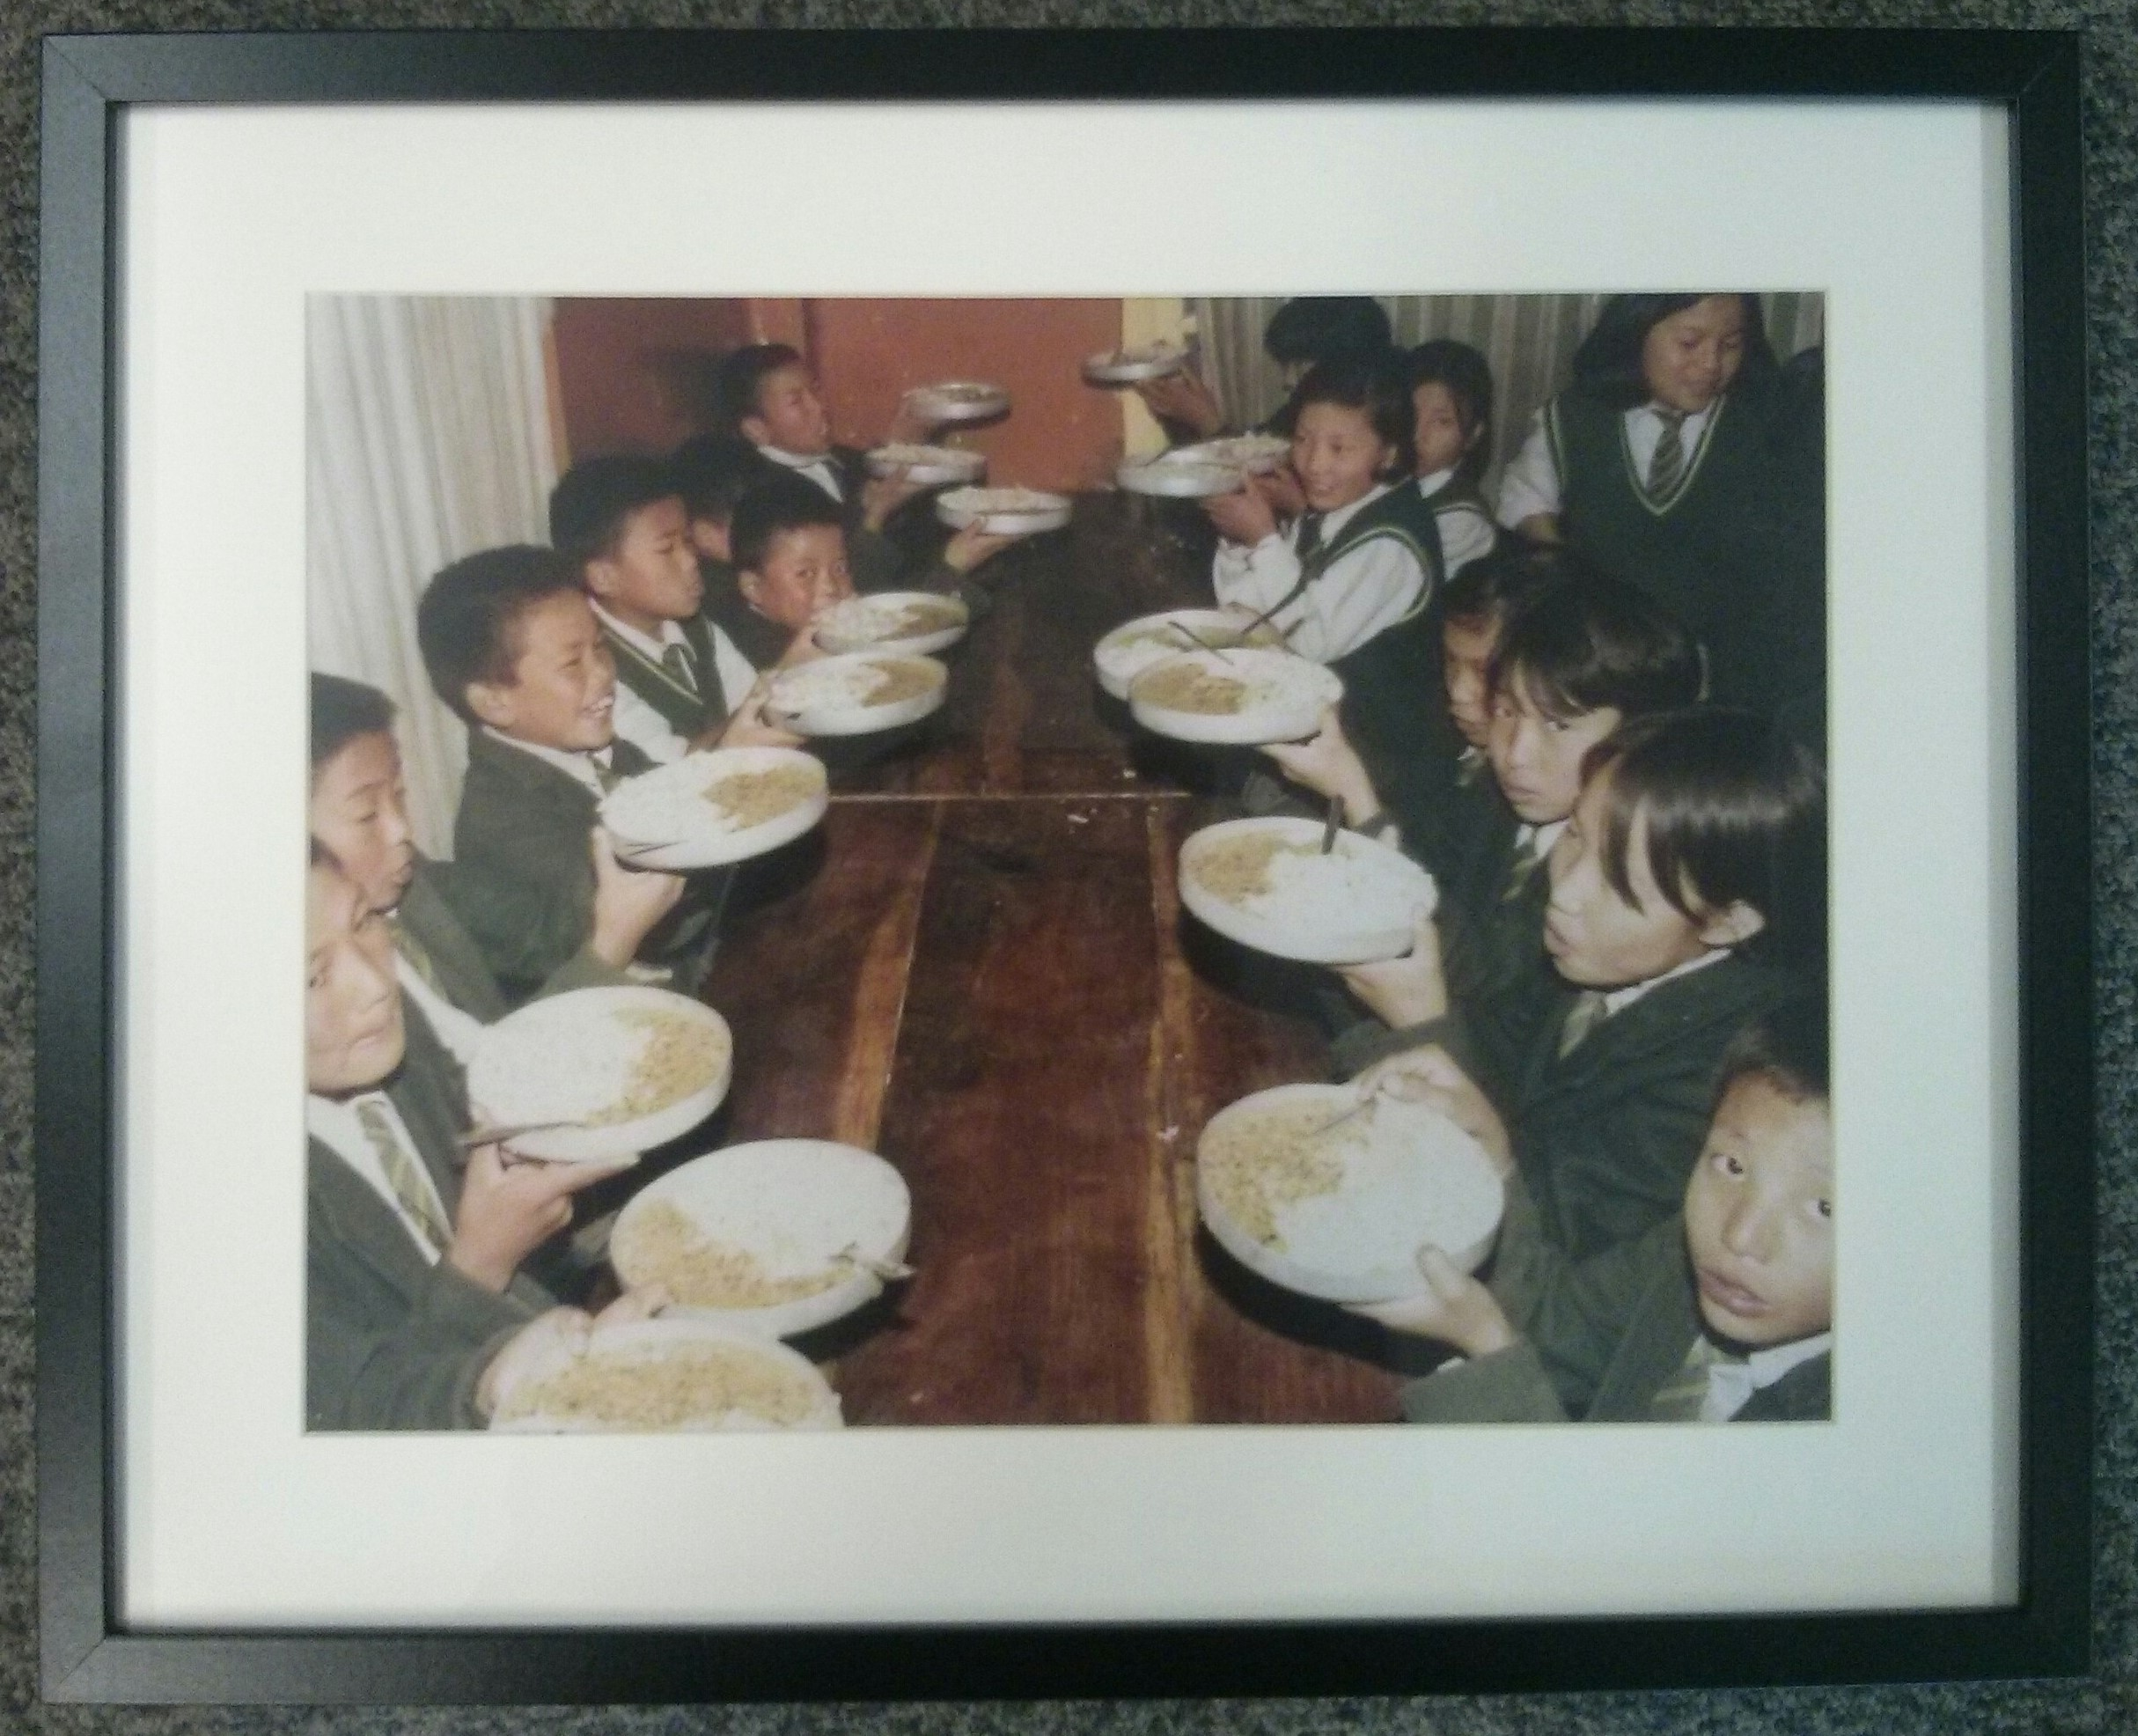 Meal time at Tibetan Homes Foundation